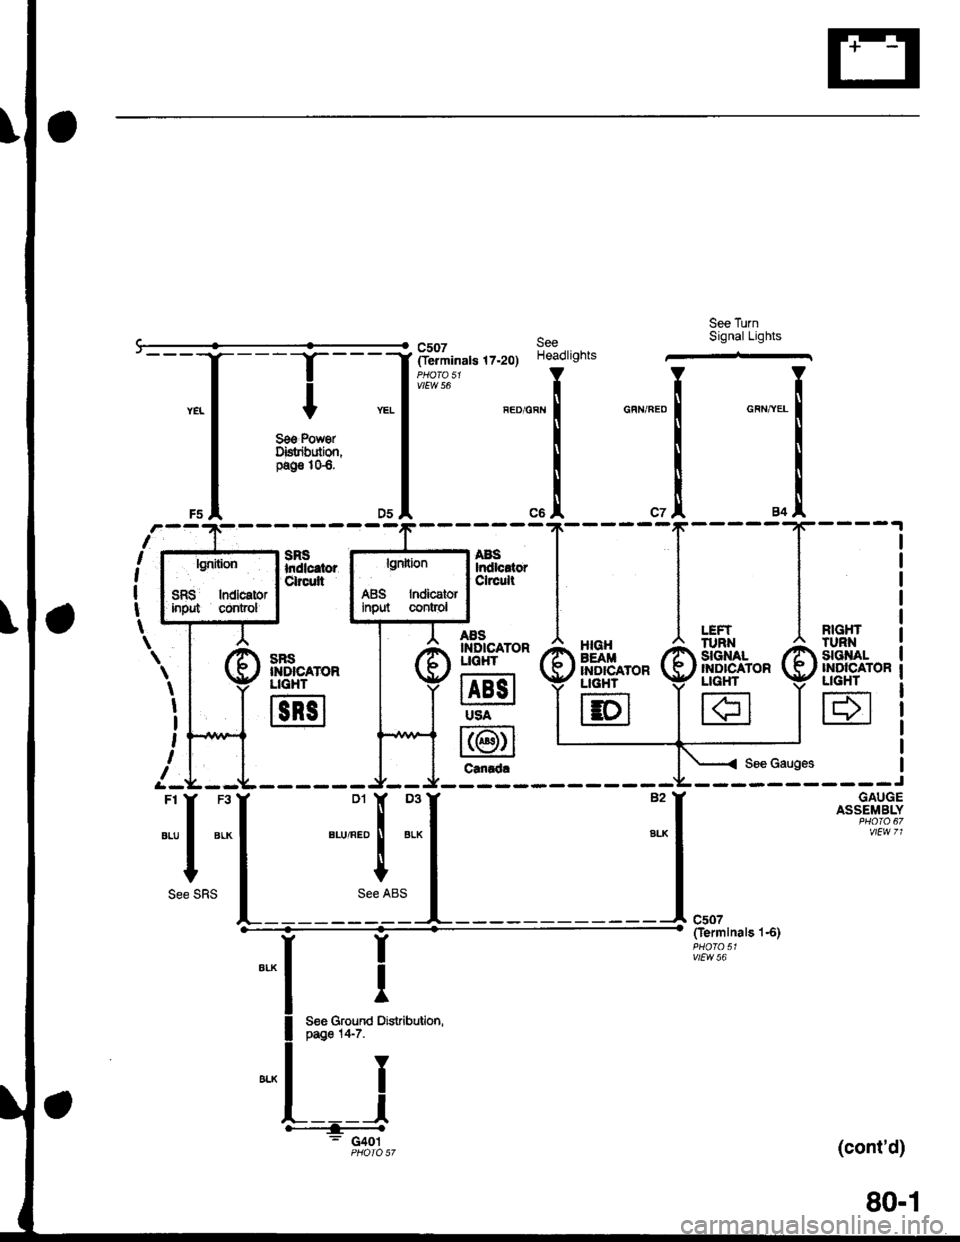 2005 Volvo Xc90 Wiring Diagram Another Blog About 2004 1995 960